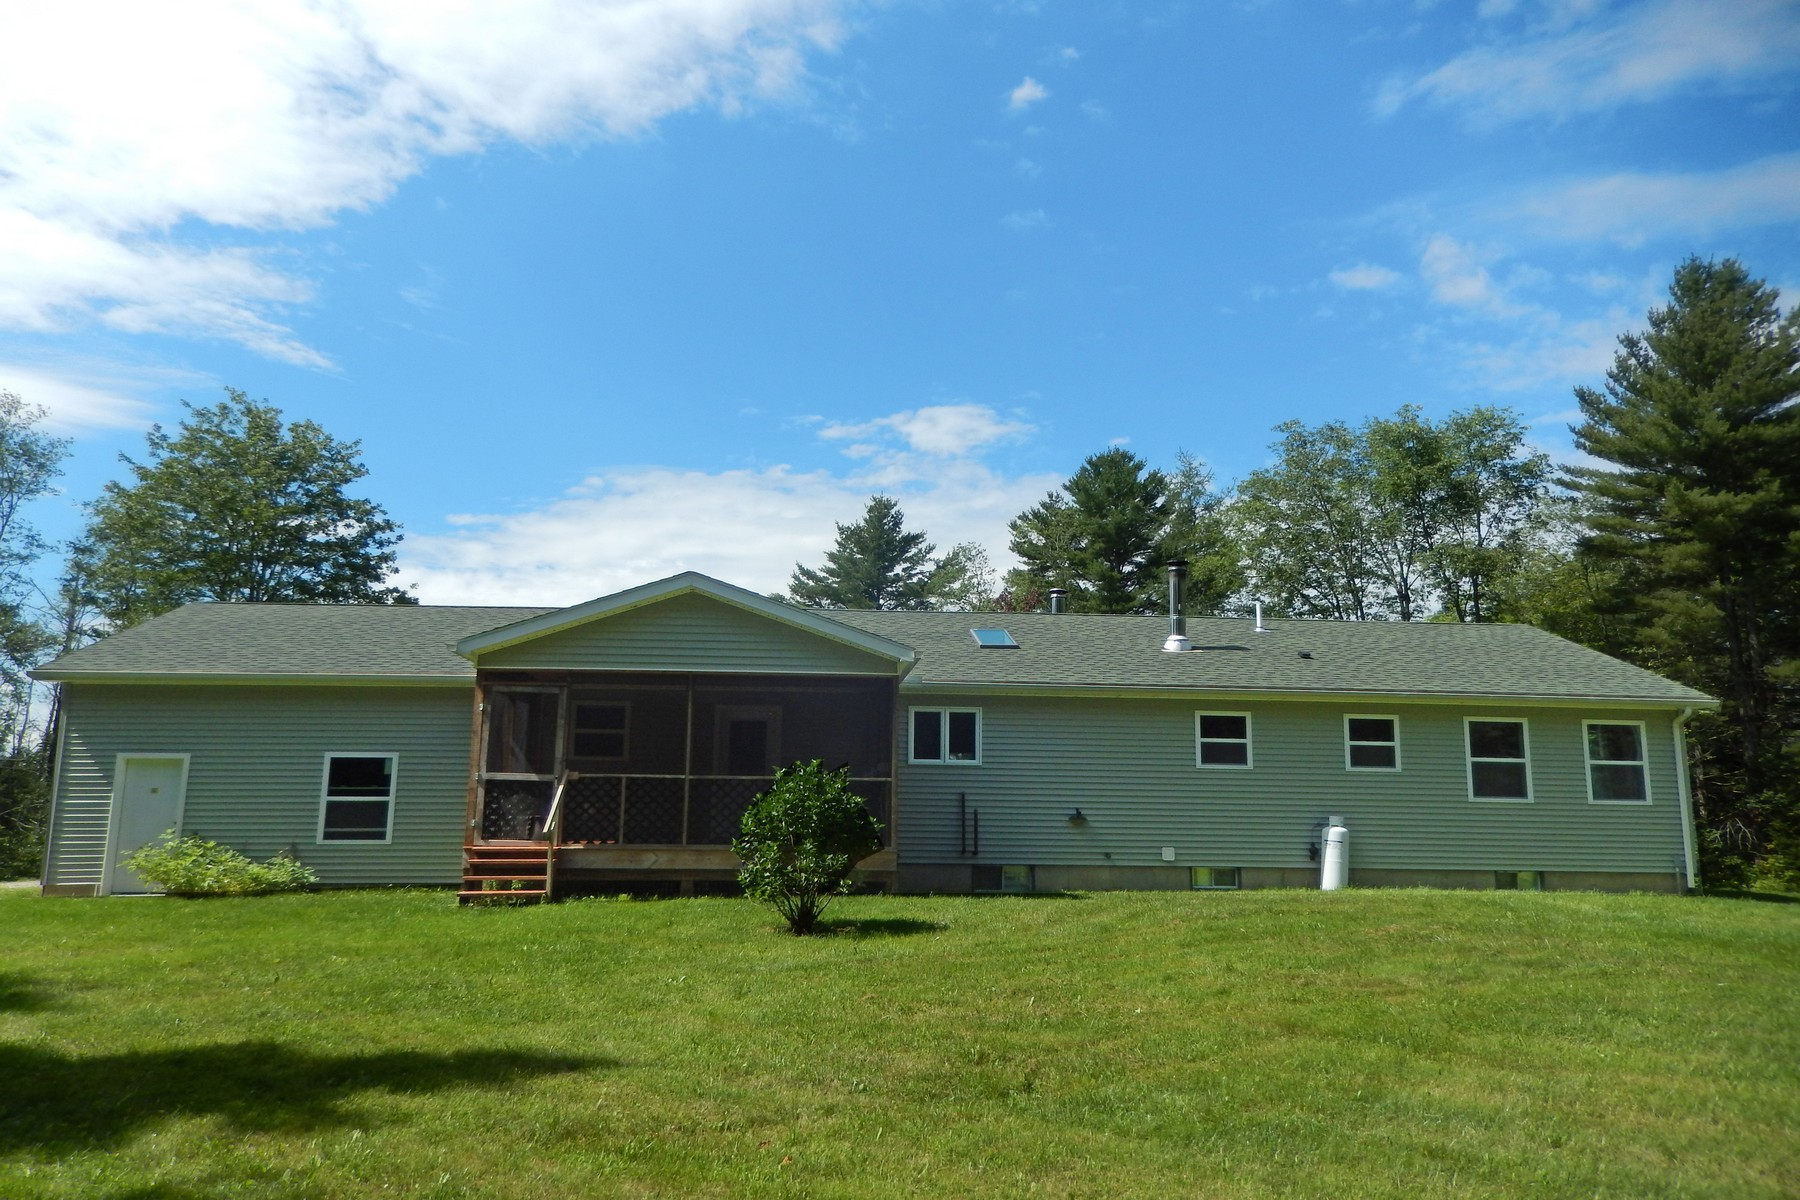 Maison unifamiliale pour l Vente à Newly Built Ranch on 11+ Acres 2083 Hortonville Rd Mount Holly, Vermont, 05758 États-Unis